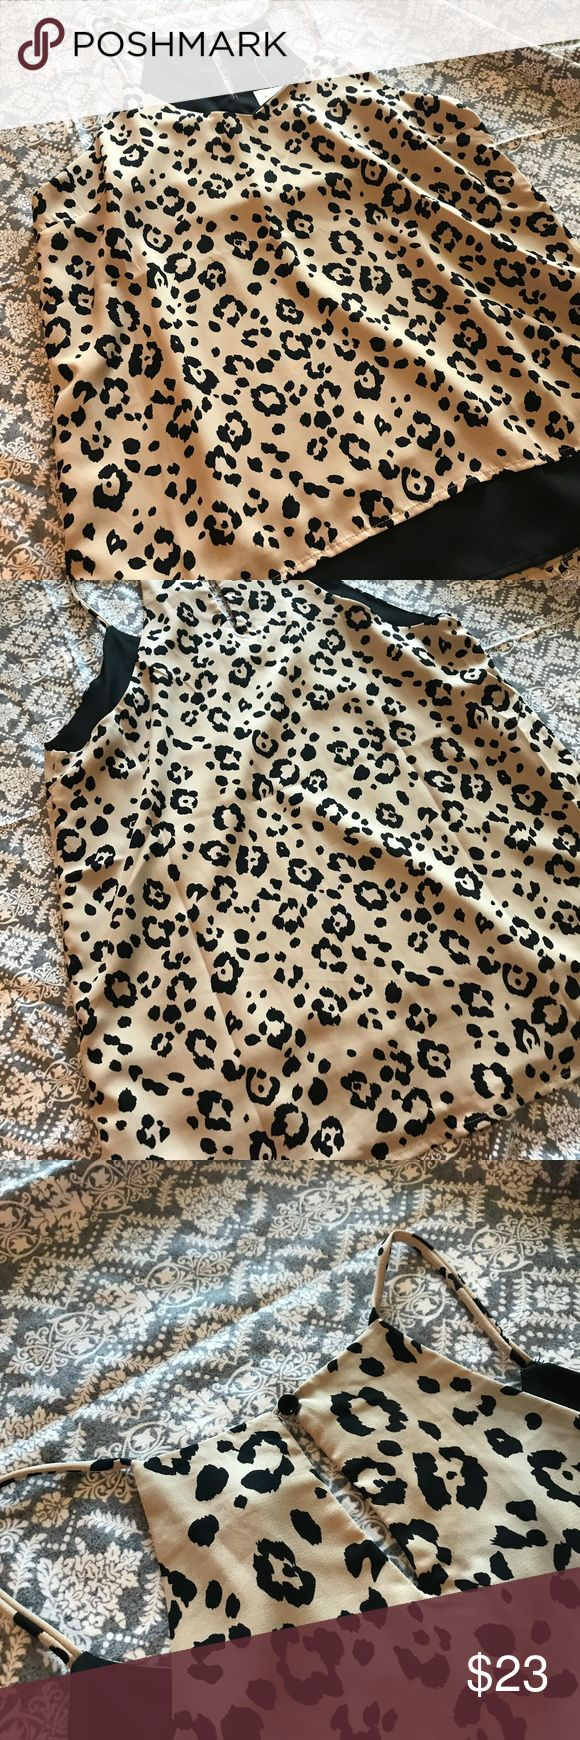 Monteau Leopard Print Black & Tan Tank Top NWOT Super cute and flirty spaghetti strap tank top! Black bottom layer, with a tan and black leopard print design across the top layer. Never worn, brand new without tags! Monteau Tops Tank Tops